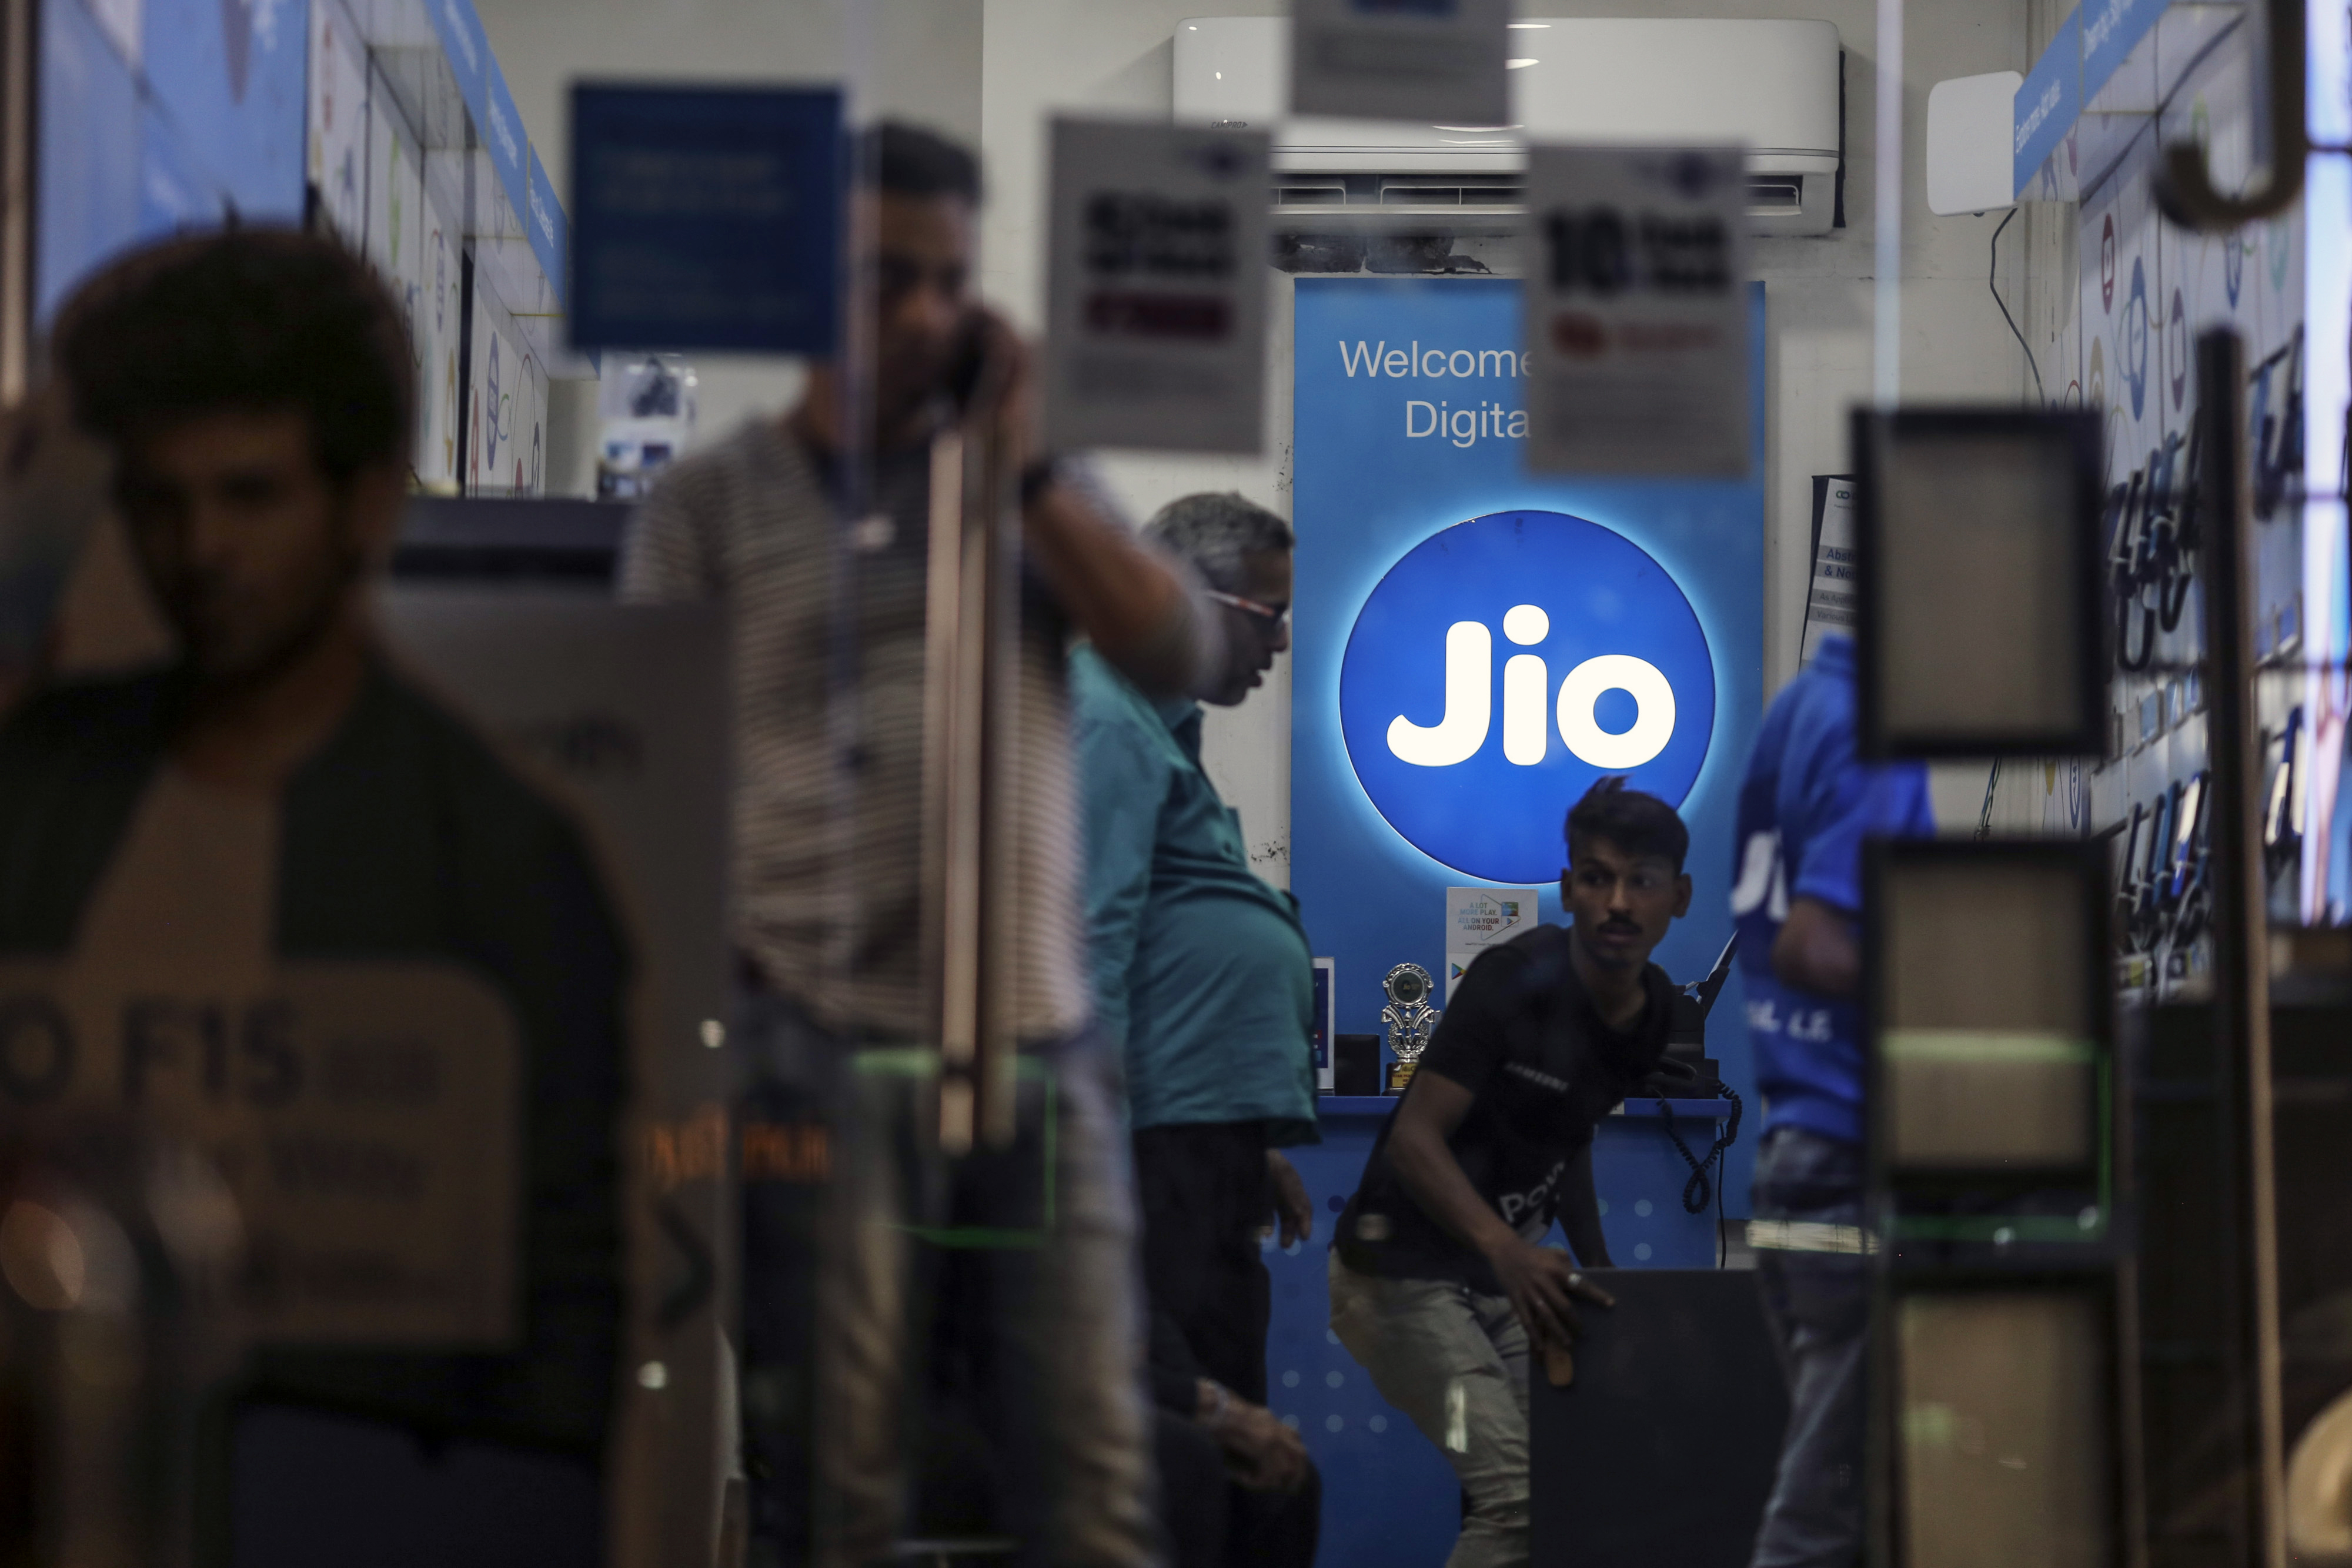 Silver Lake to invest Rs 5,655.75 crore in Reliance Jio Platforms